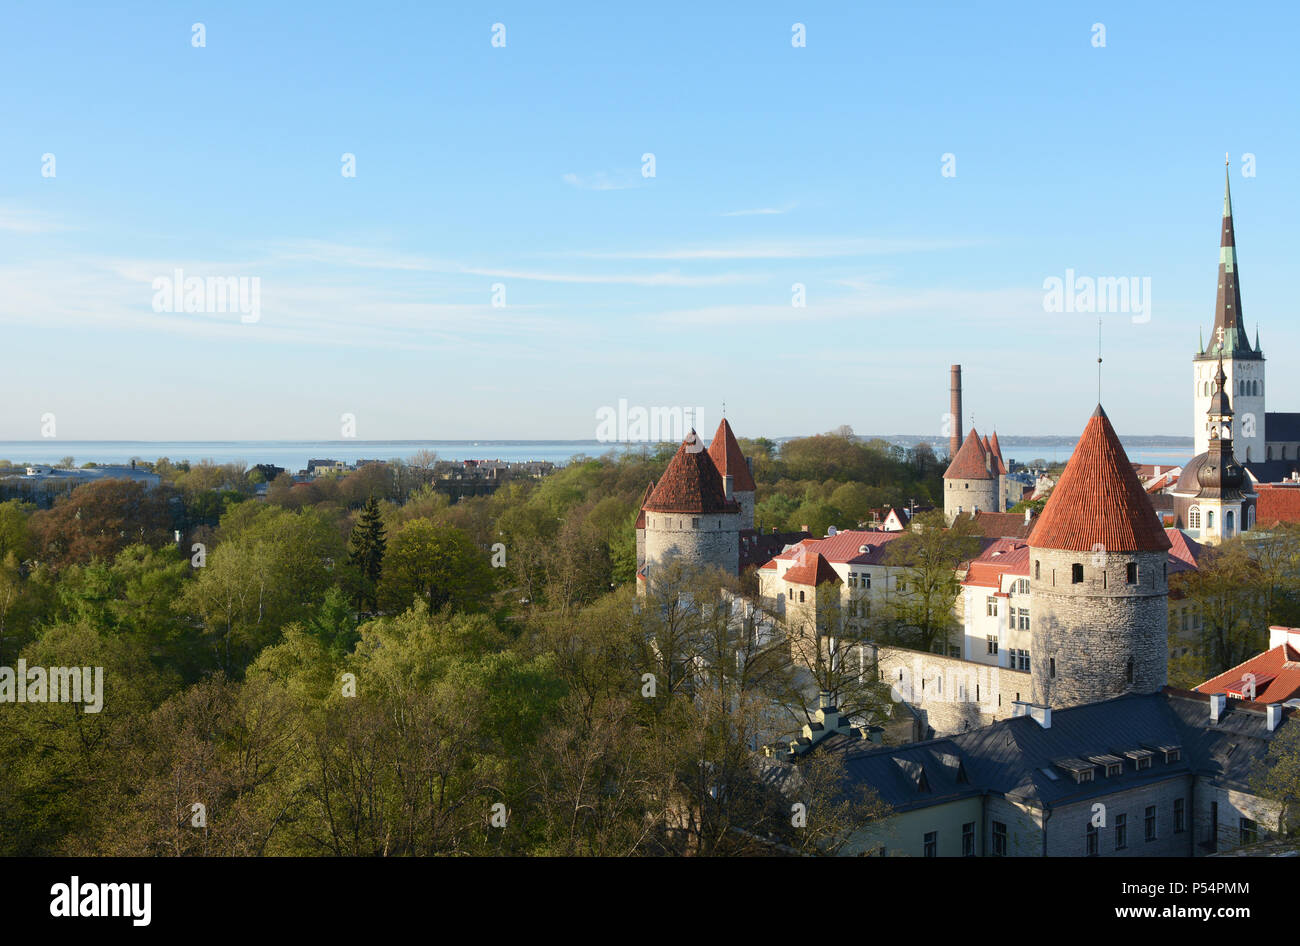 Medieval wall and towers around the Old Town of Tallinn, Estonia, meet wooded parkland. Tallinn Bay lies beyond. - Stock Image